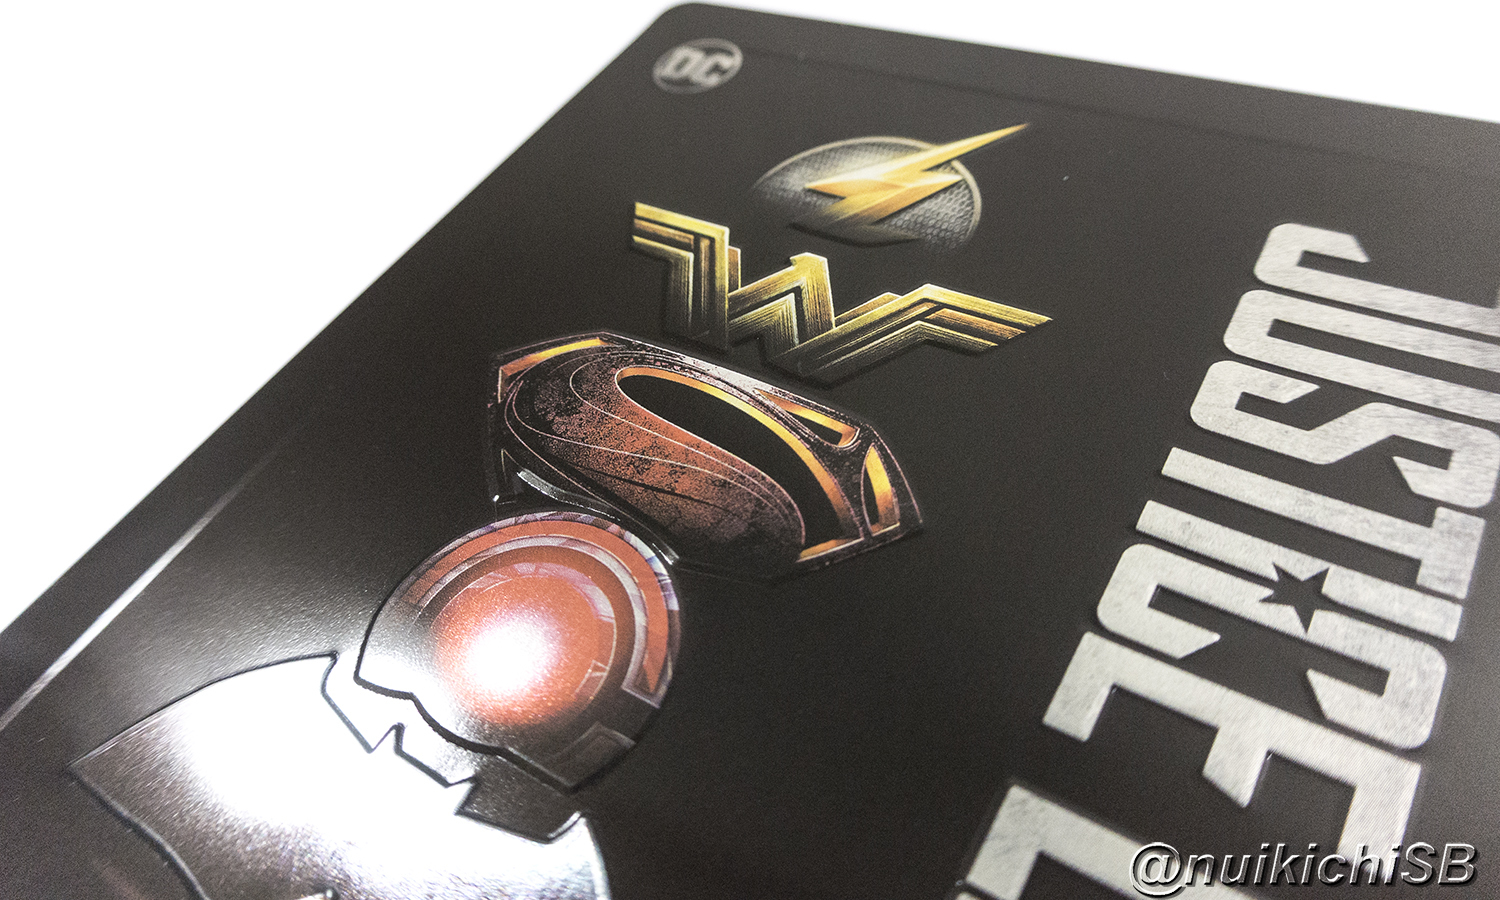 Justice League Amazon.it Italy steelbook ジャスティス・リーグ イタリア スチールブック